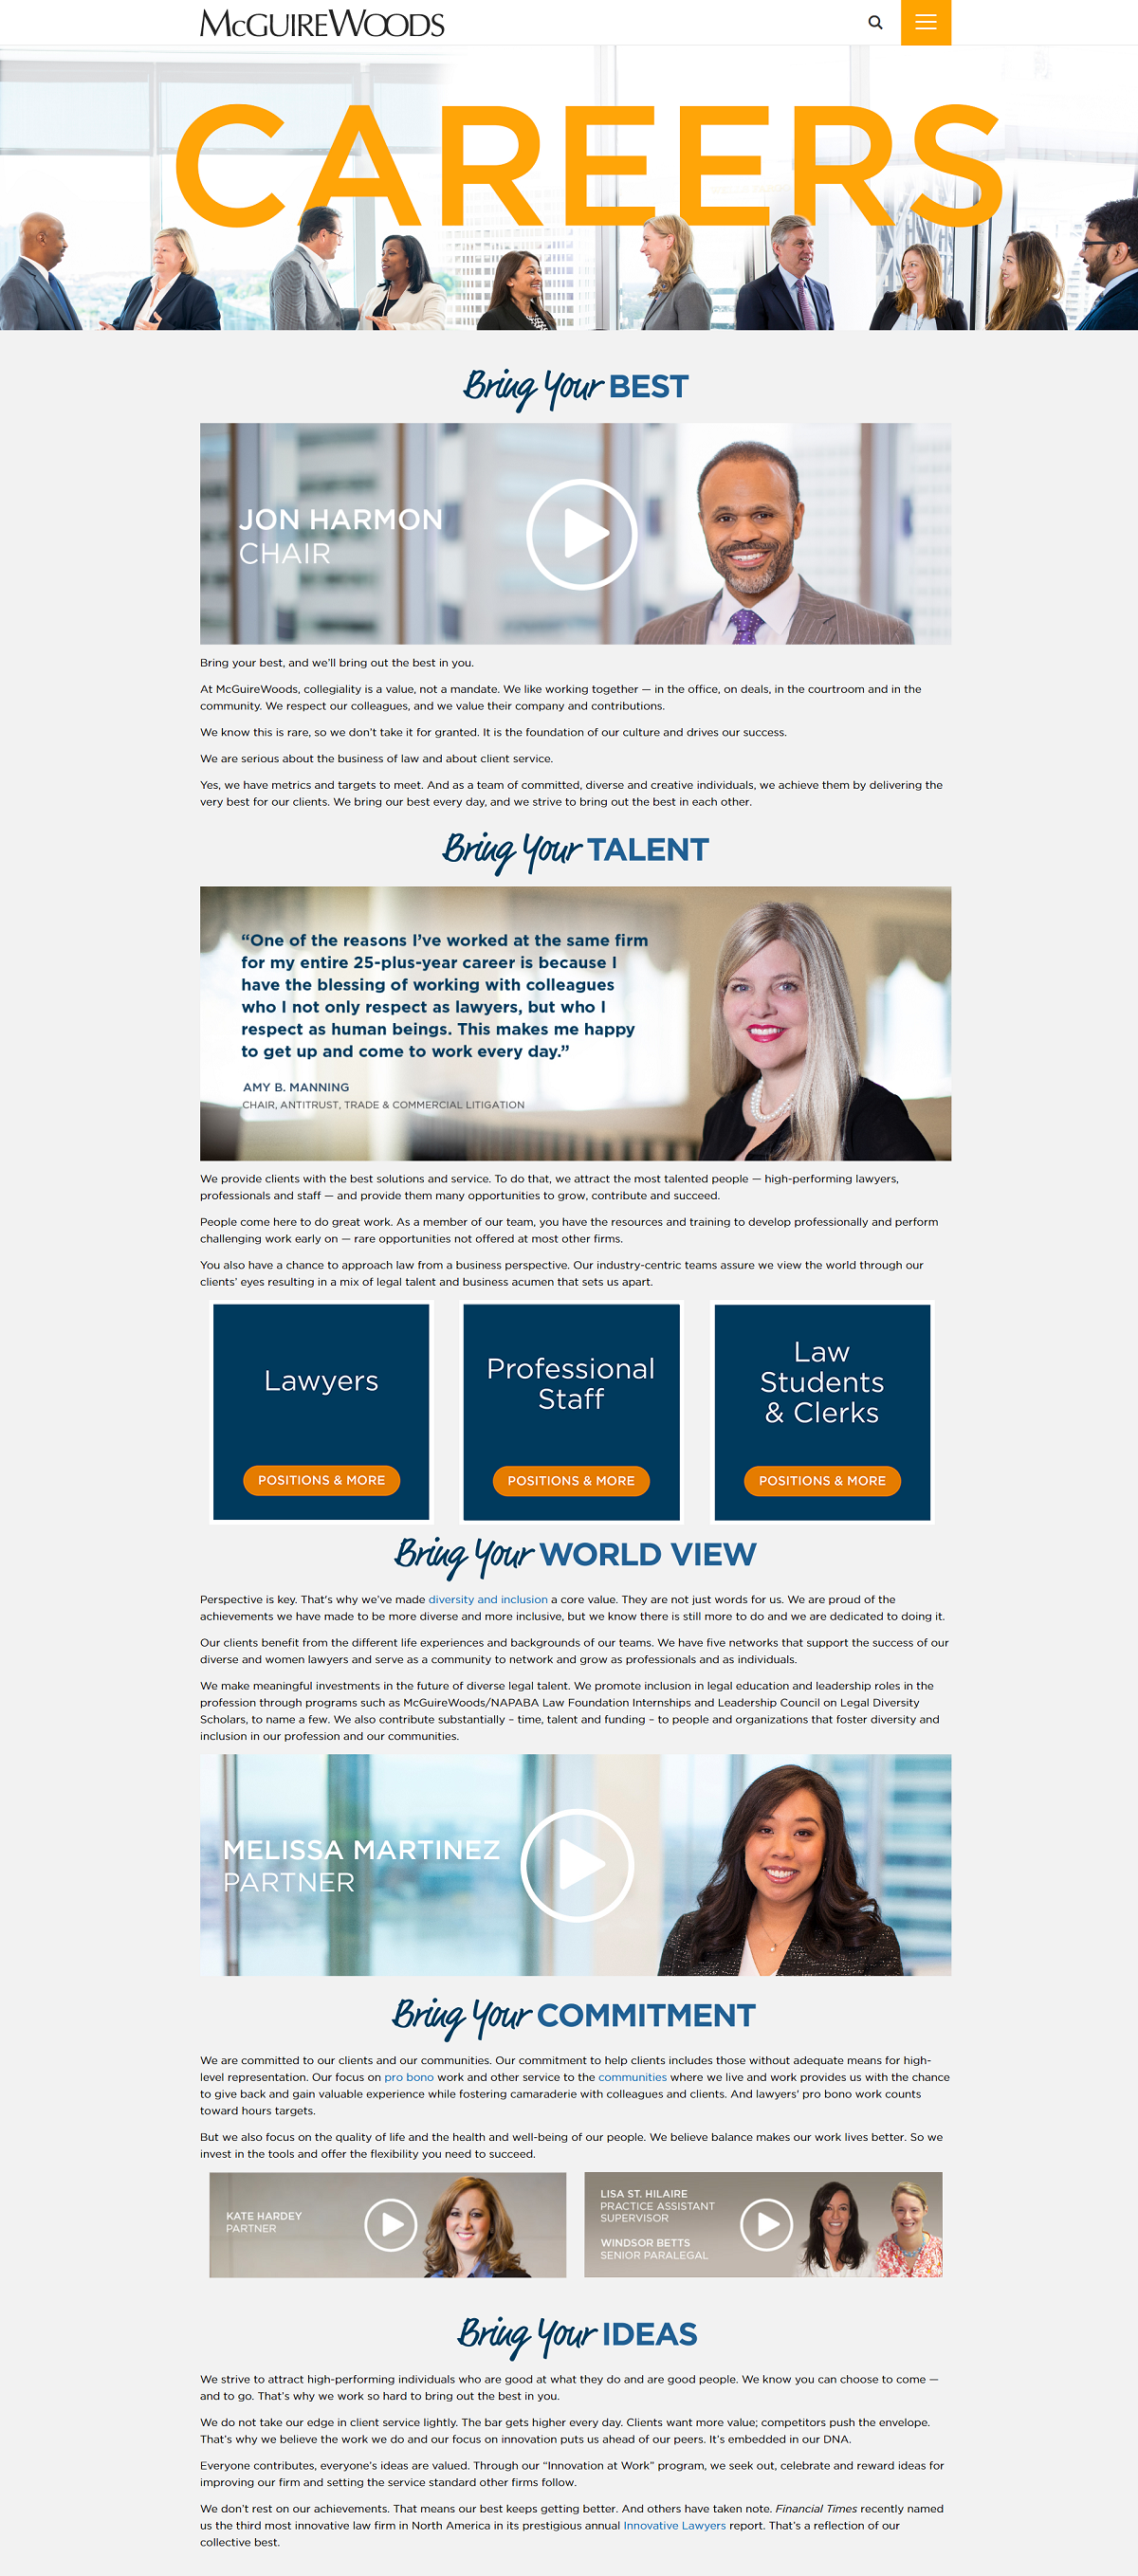 McGuire Woods llp company career page